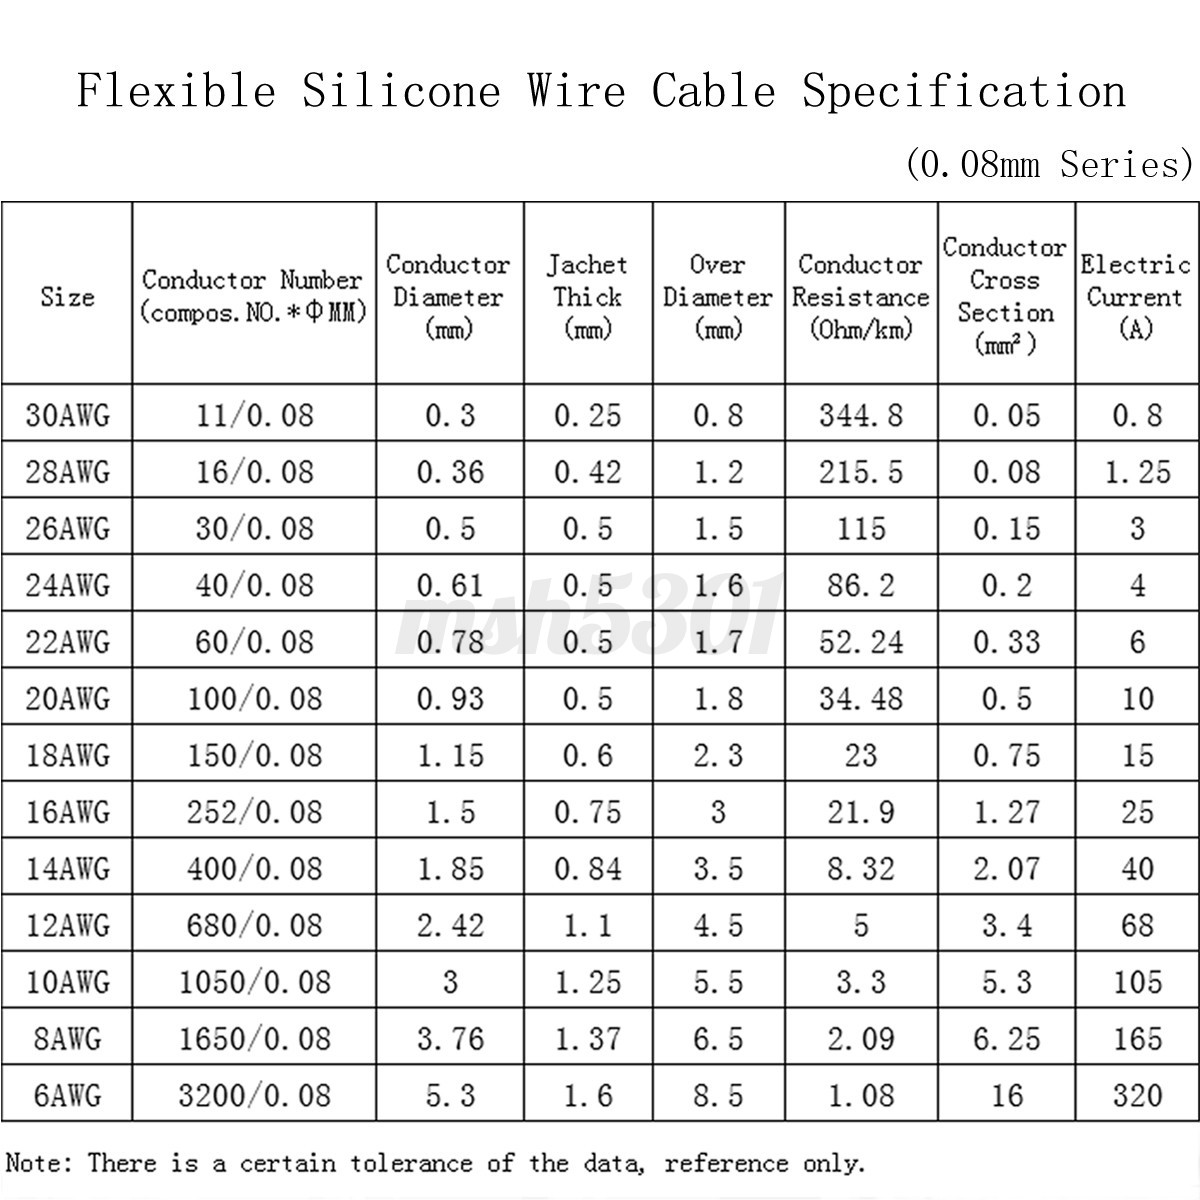 Cool 16 awg wire diameter images electrical system block diagram great 10 awg wire diameter images electrical circuit diagram greentooth Image collections